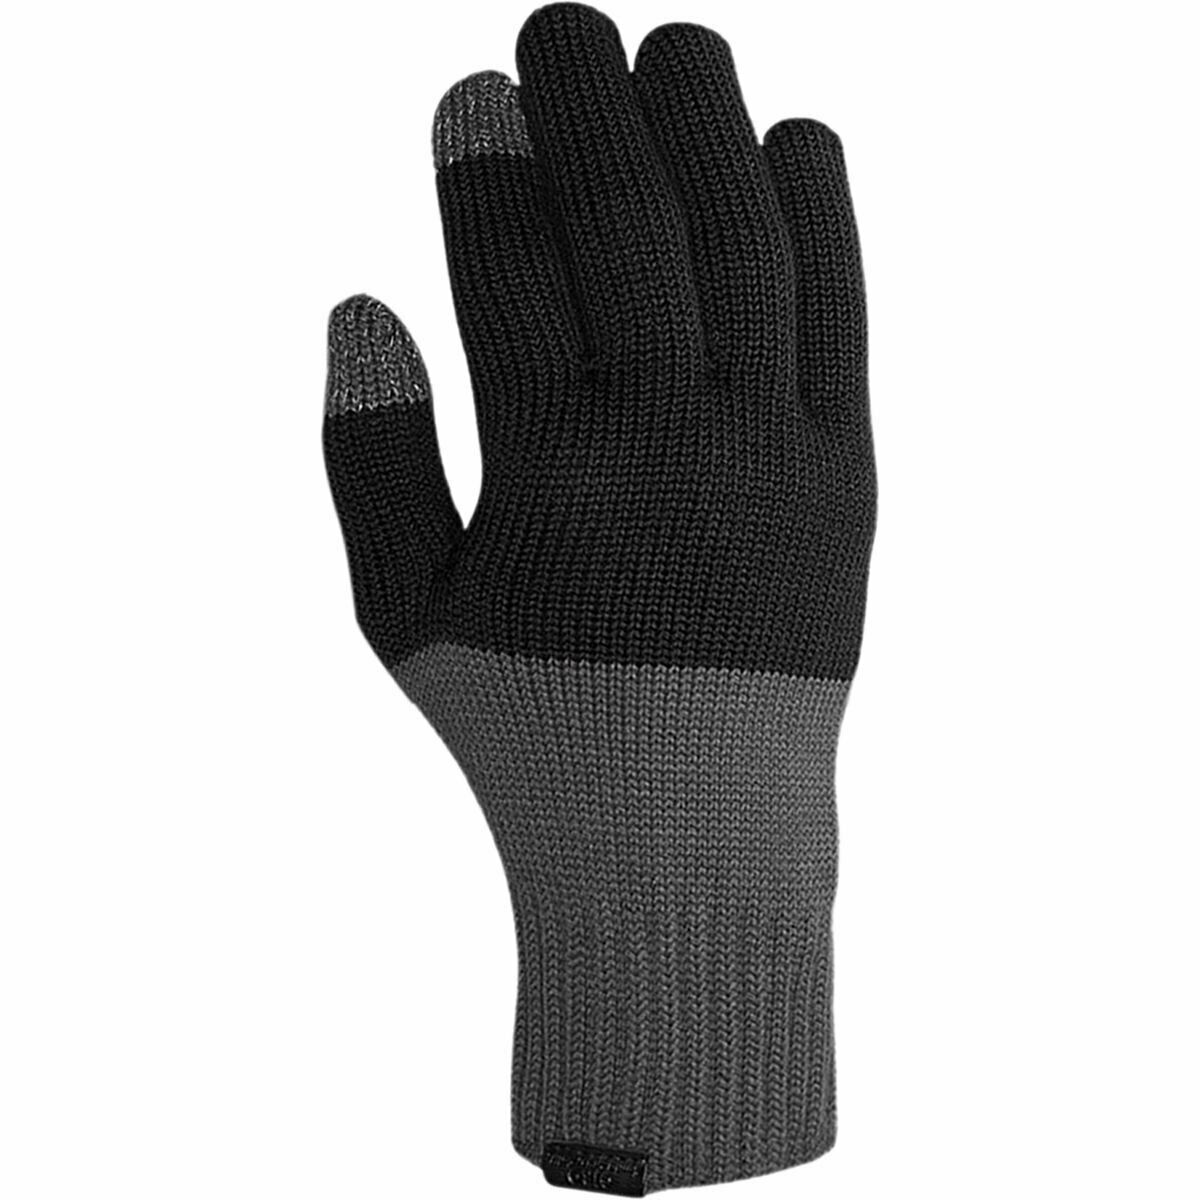 Giro Merino Wool Winter Gloves - Cycles Galleria Melbourne